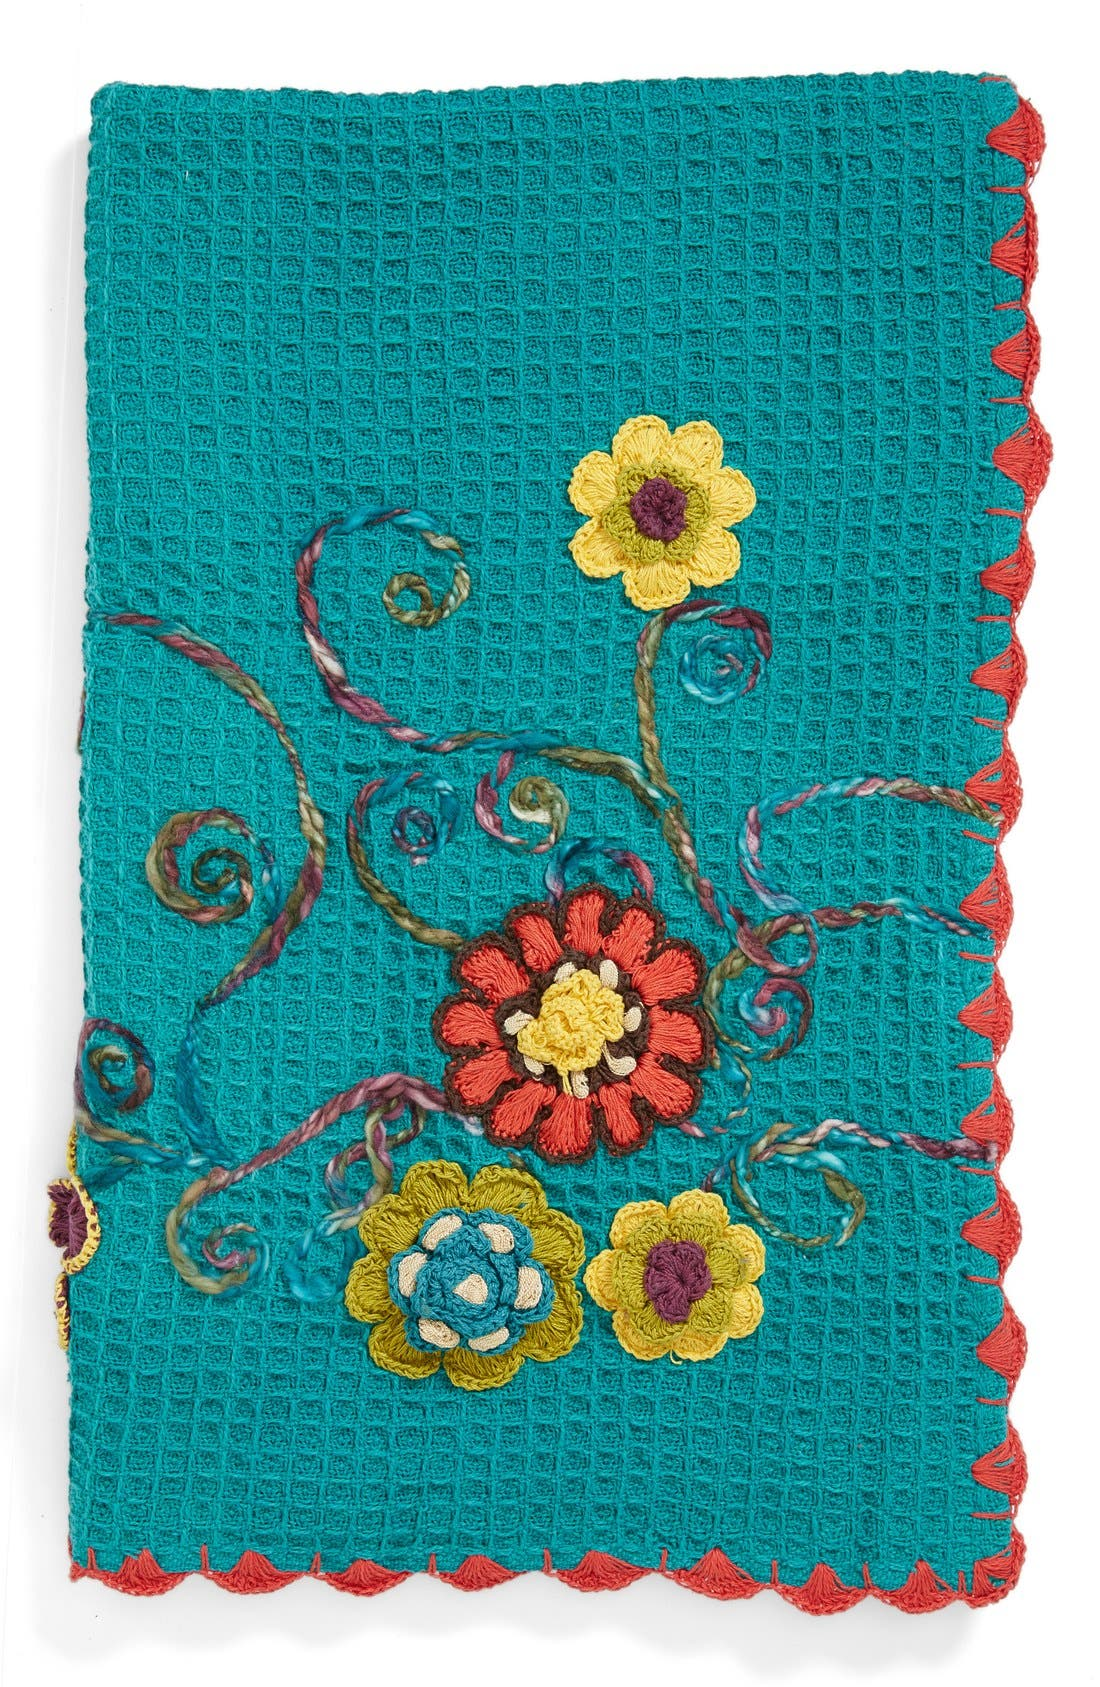 Alternate Image 1 Selected - Amity Home 'Haley' Floral Embroidered Knit Throw